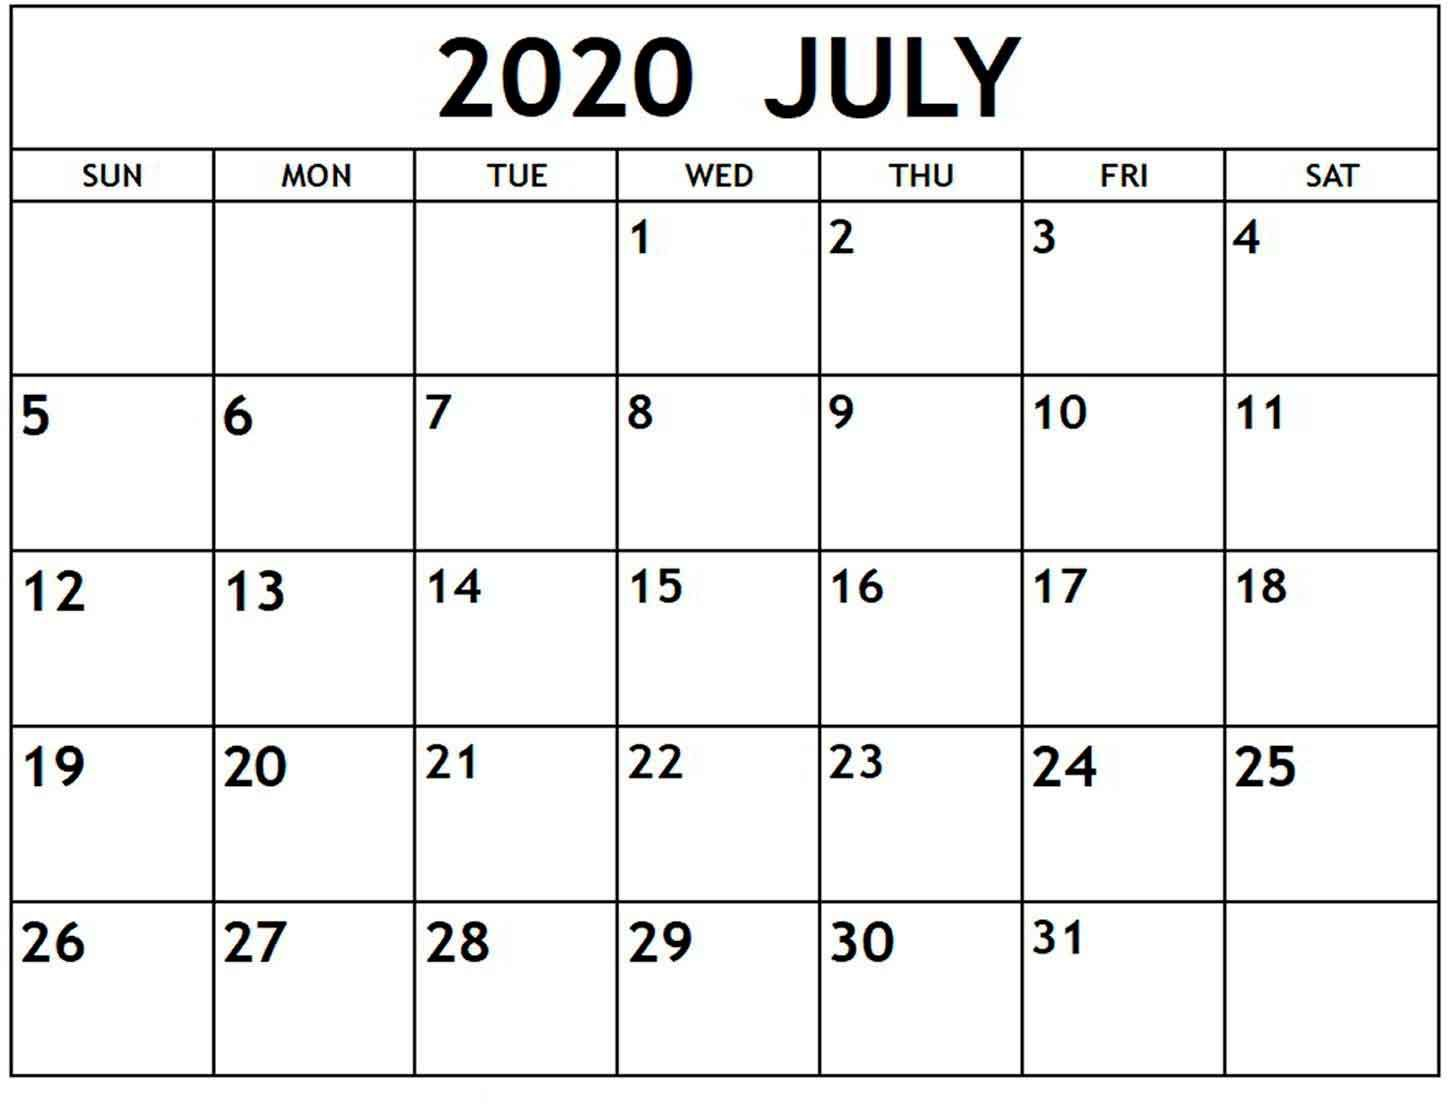 004 Awesome Calendar Template 2020 Word Picture  April Monthly Microsoft With Holiday FebruaryFull